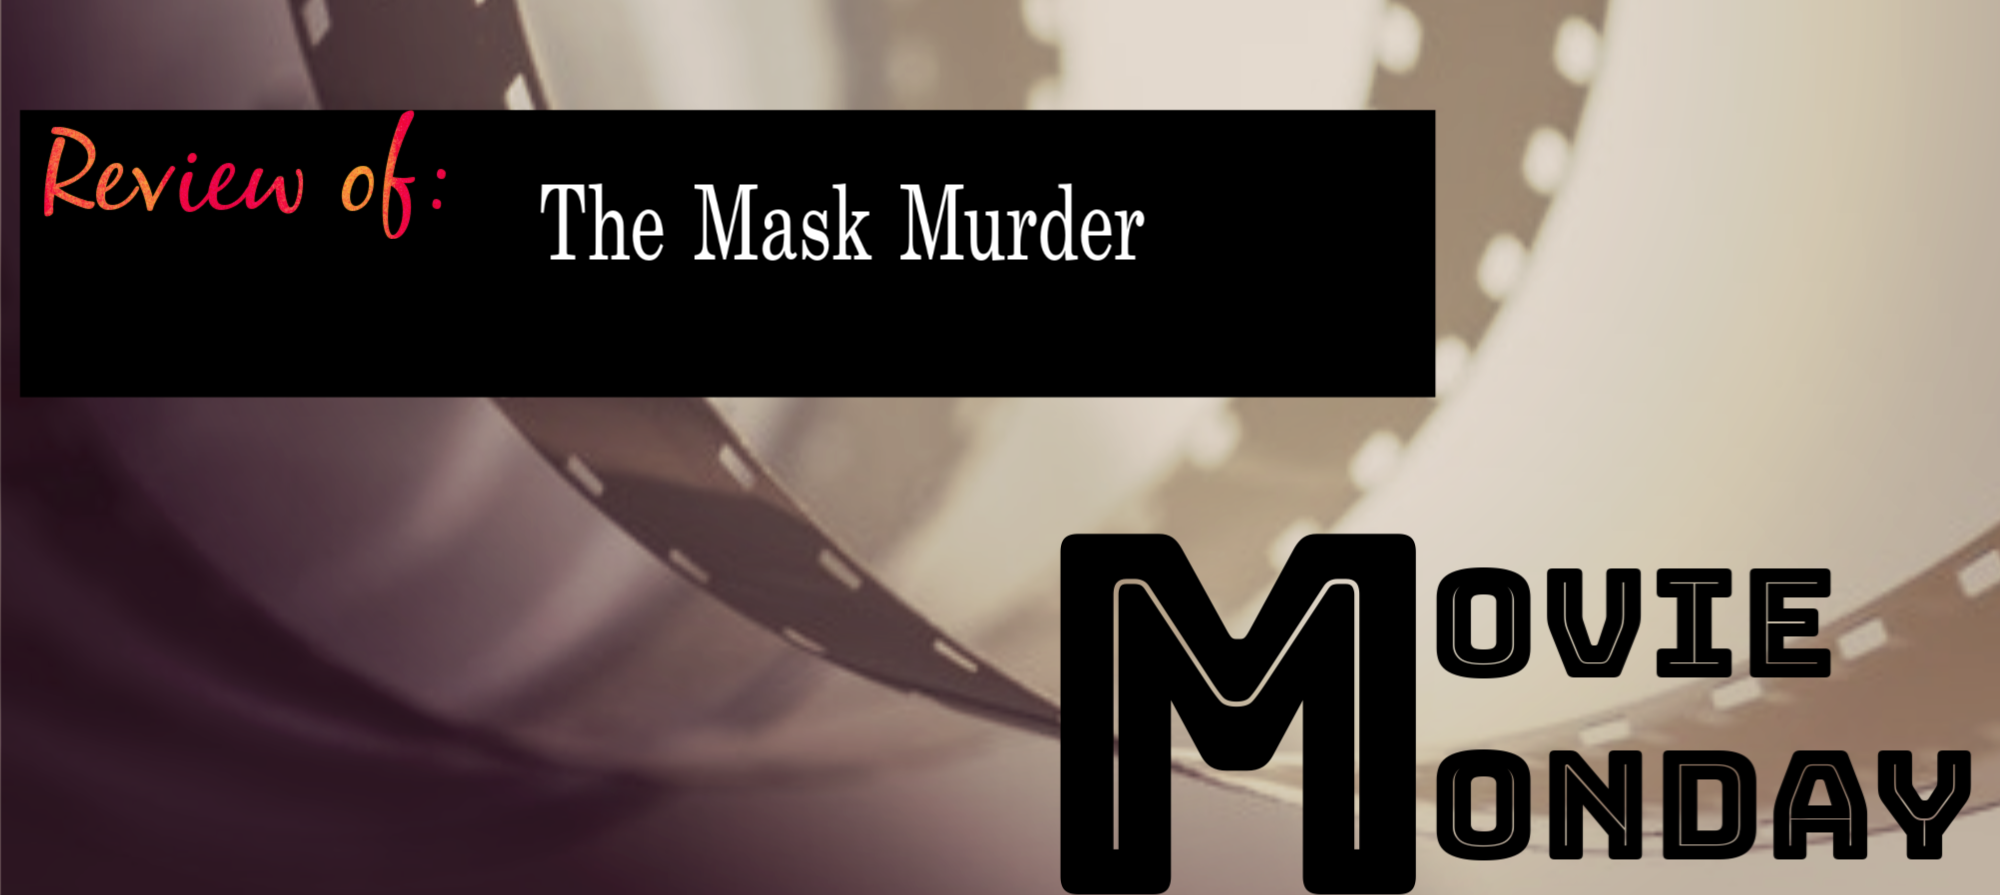 the mask murder movie monday